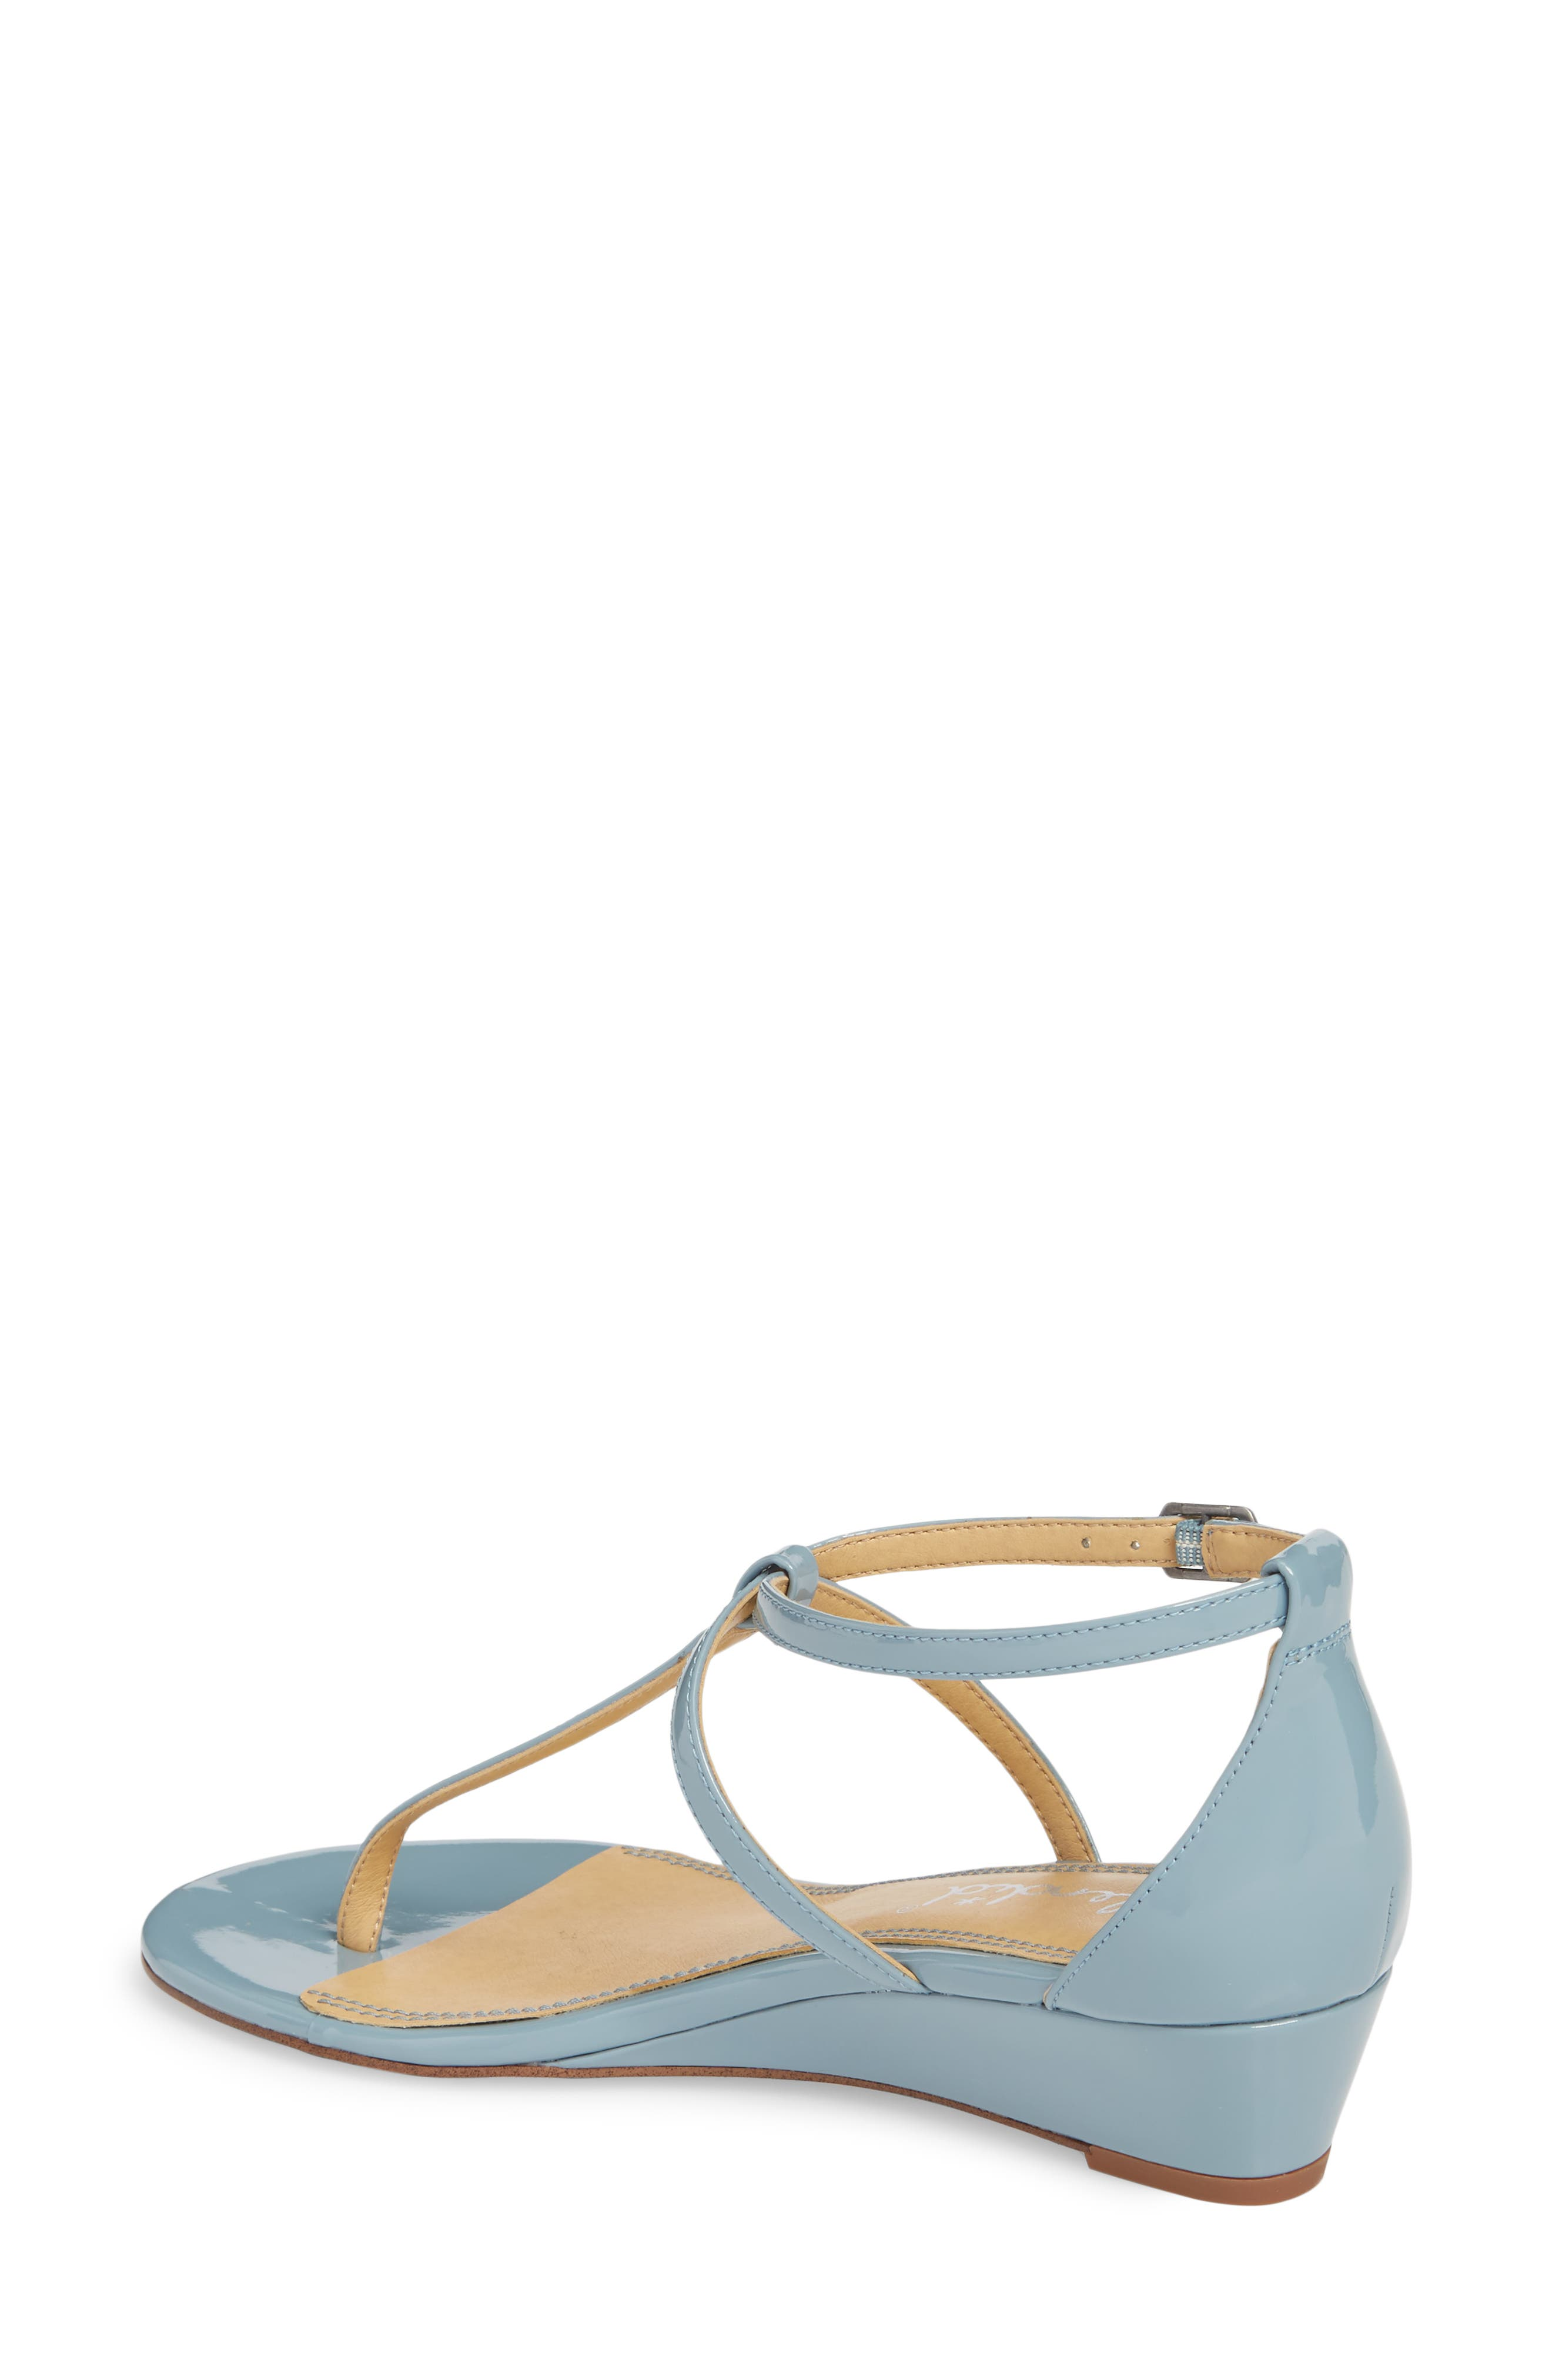 Bryce T-Strap Wedge Sandal,                             Alternate thumbnail 10, color,